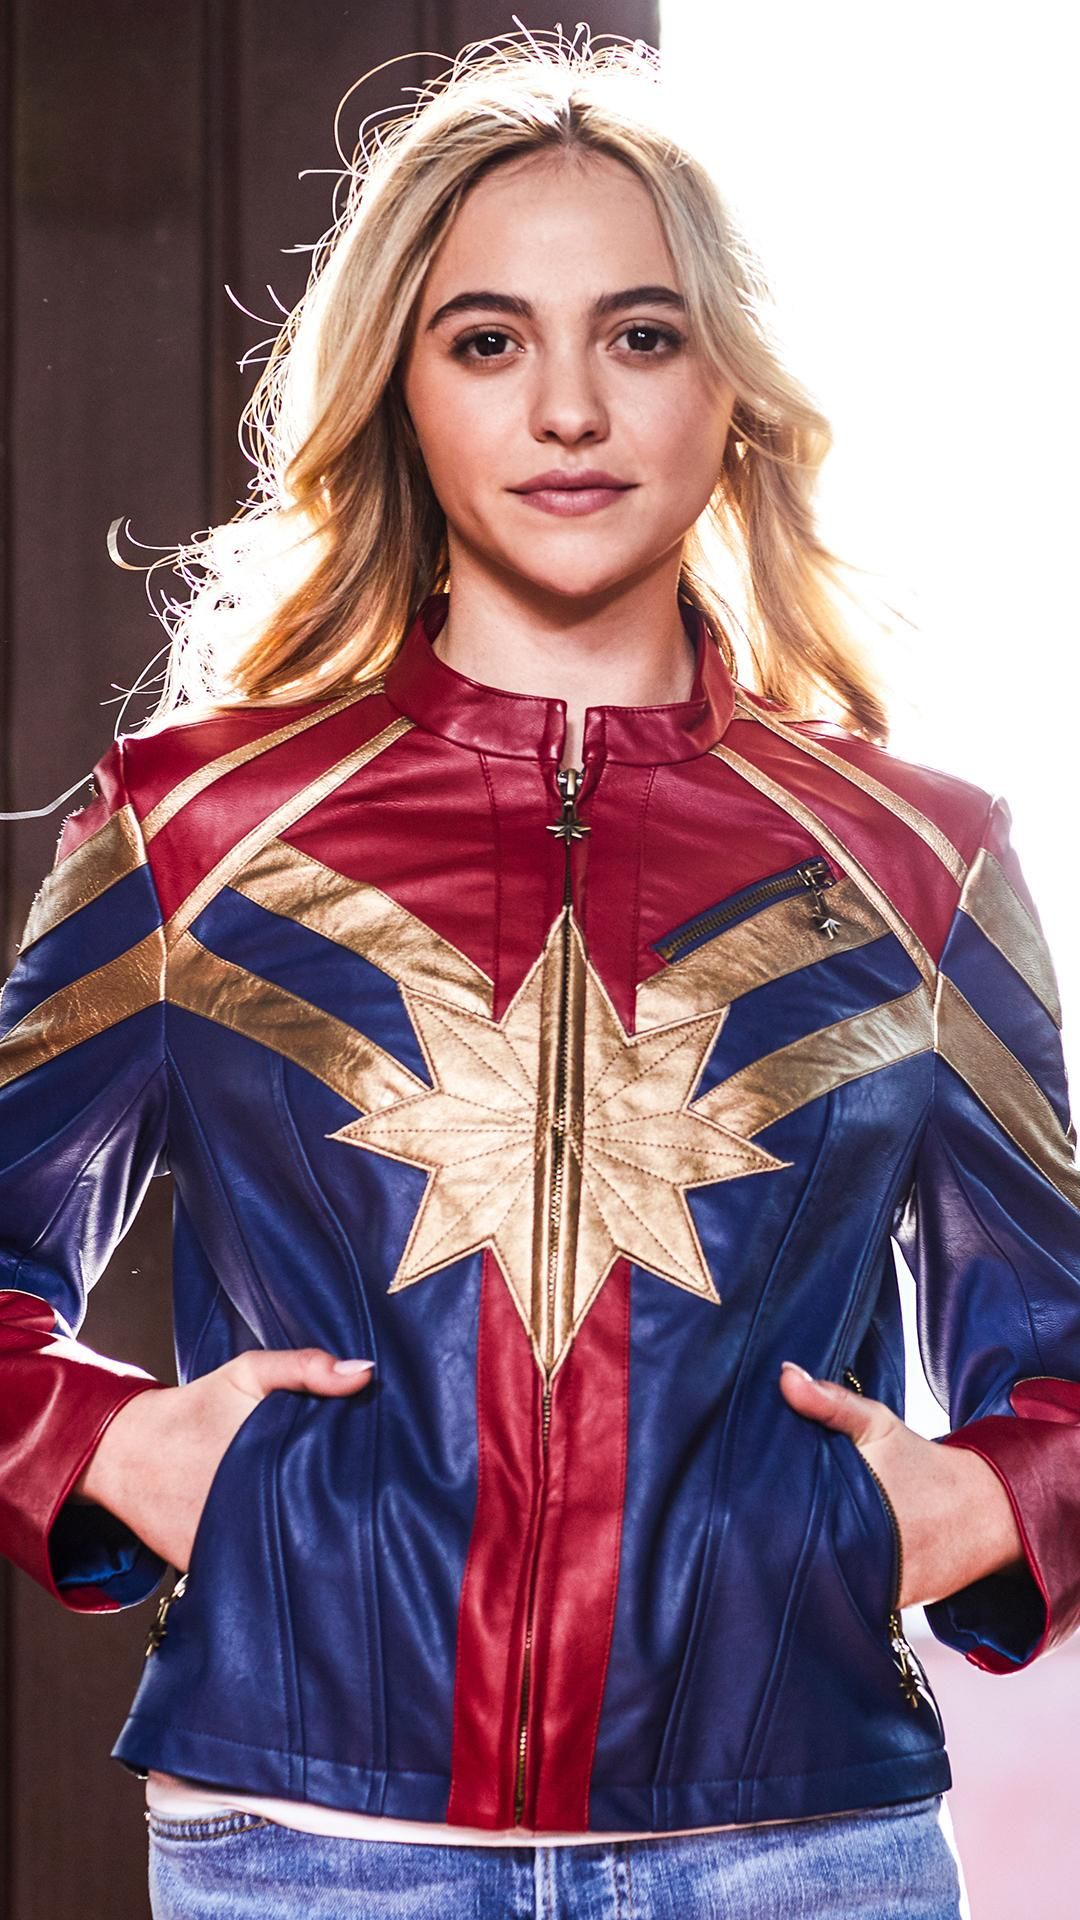 Earth S Mightiest Hero The Incomparable Carol Danvers Her Universe Marvel Captain Marvel Star Girls Faux Leather Marvel Jacket Fandom Outfits Marvel Shirt [ 1920 x 1080 Pixel ]